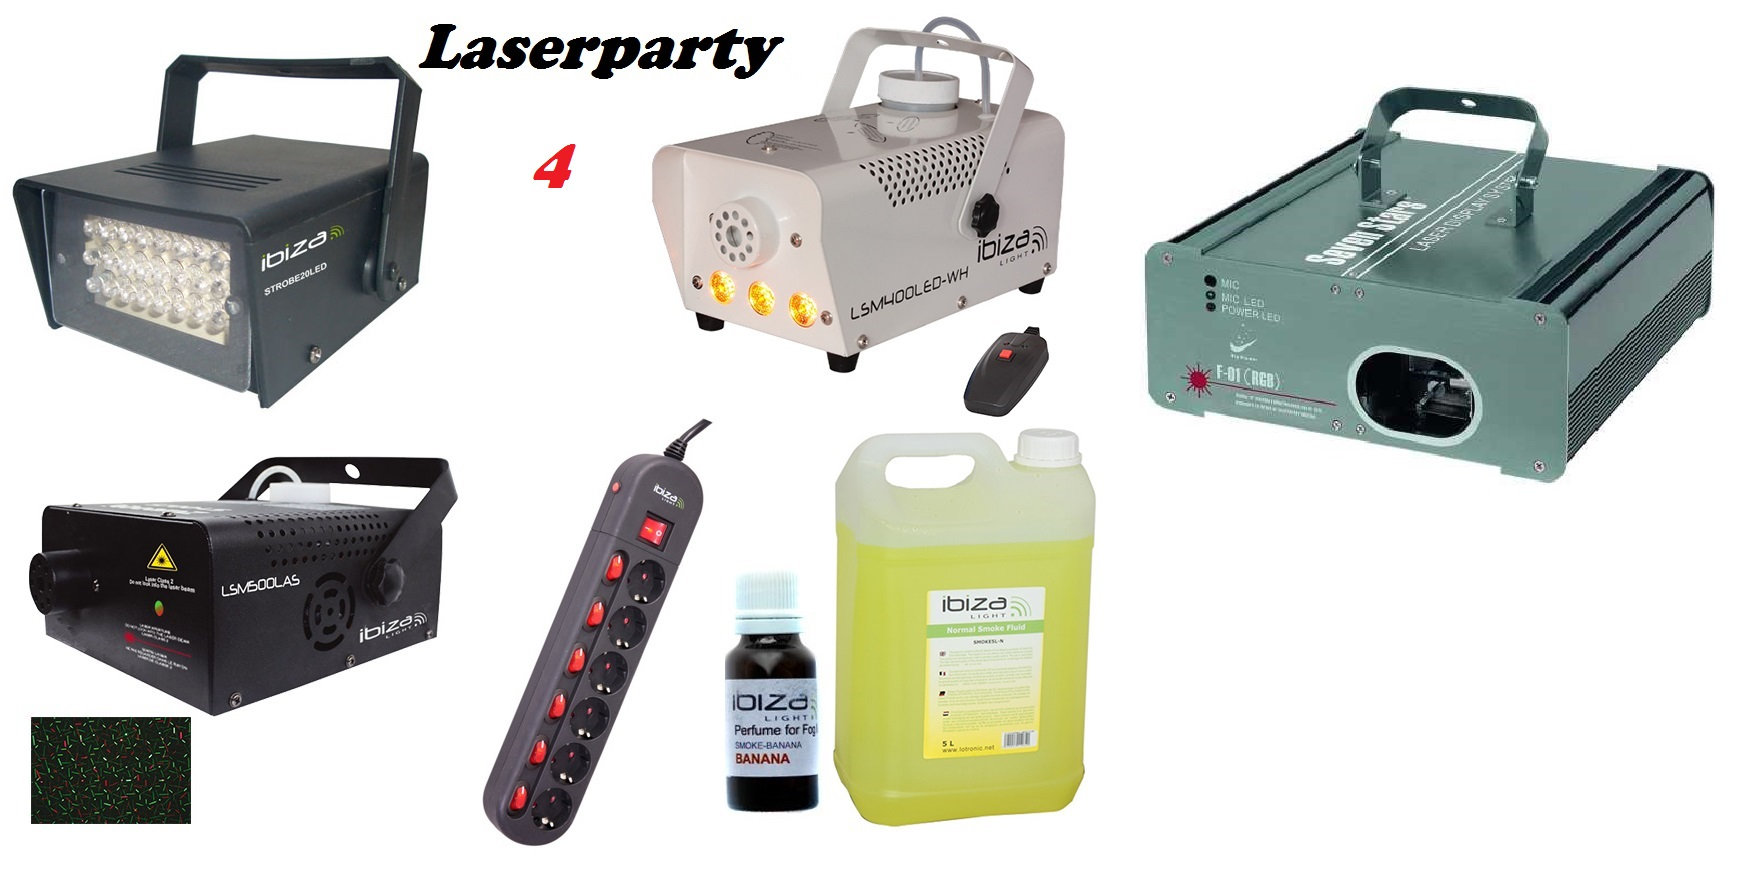 set LASERPARTY 4 PLUS